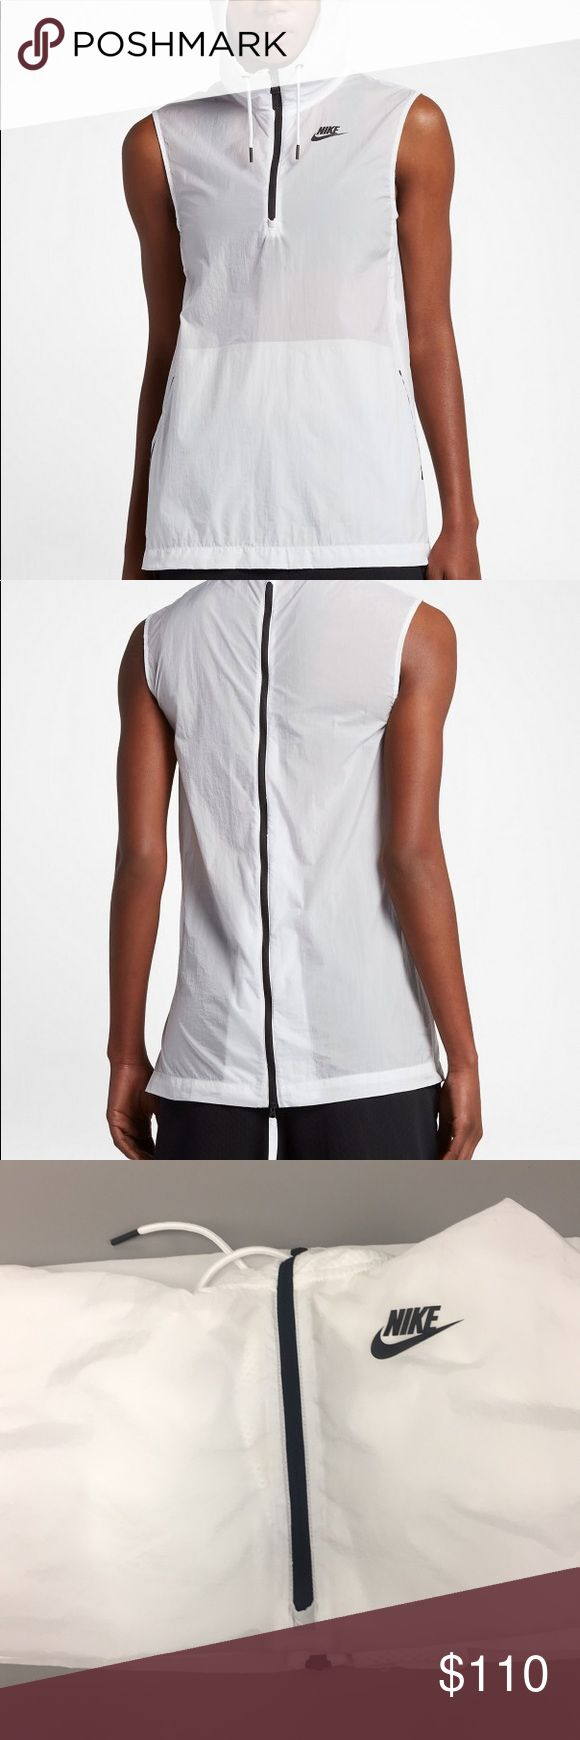 Nike Tech Hypermesh Vest The Women's Nike Sportswear Vest blends chic style with breathability where you want it. Made from smooth fabric with an iridescent shine, its neckline and back unzip to reveal mesh gussets. 1/2-length zipper reveals a mesh gusset. Side vents allow you to access the internal kangaroo pocket. Back unzips into a mesh pleat for enhanced breathability. Rubber Nike corporate logo is screen printed on the front chest. 100% nylon. Nike Tops Sweatshirts & Hoodies